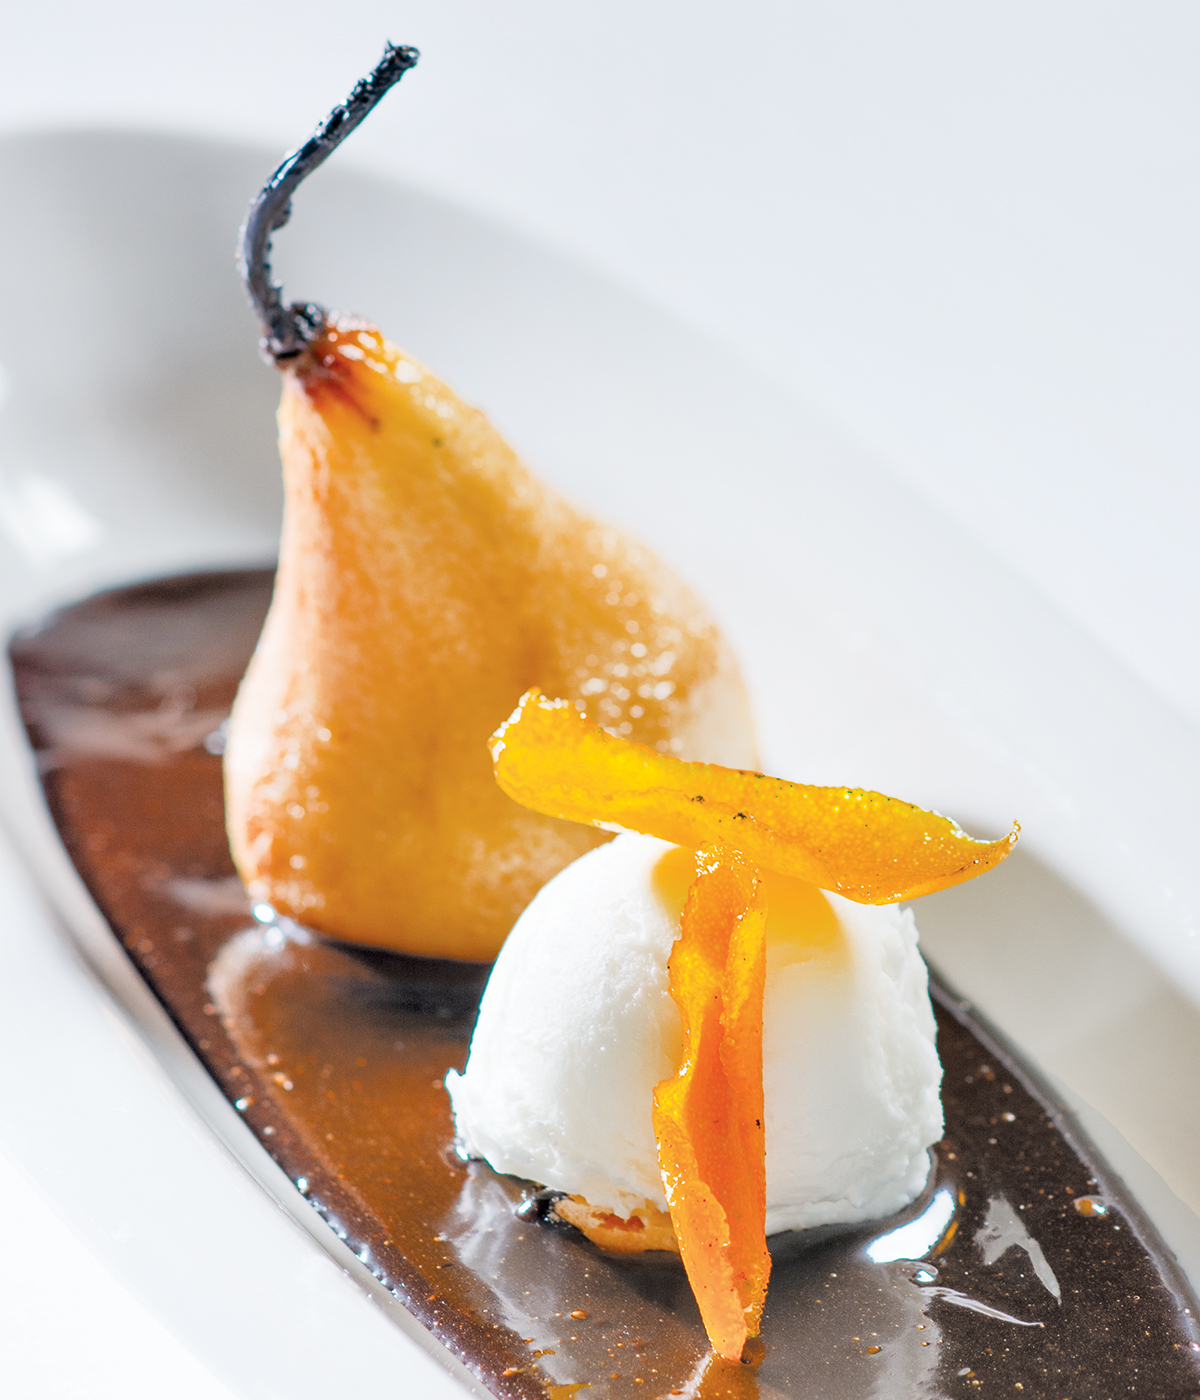 Roasted Pears with Chocolate Sauce